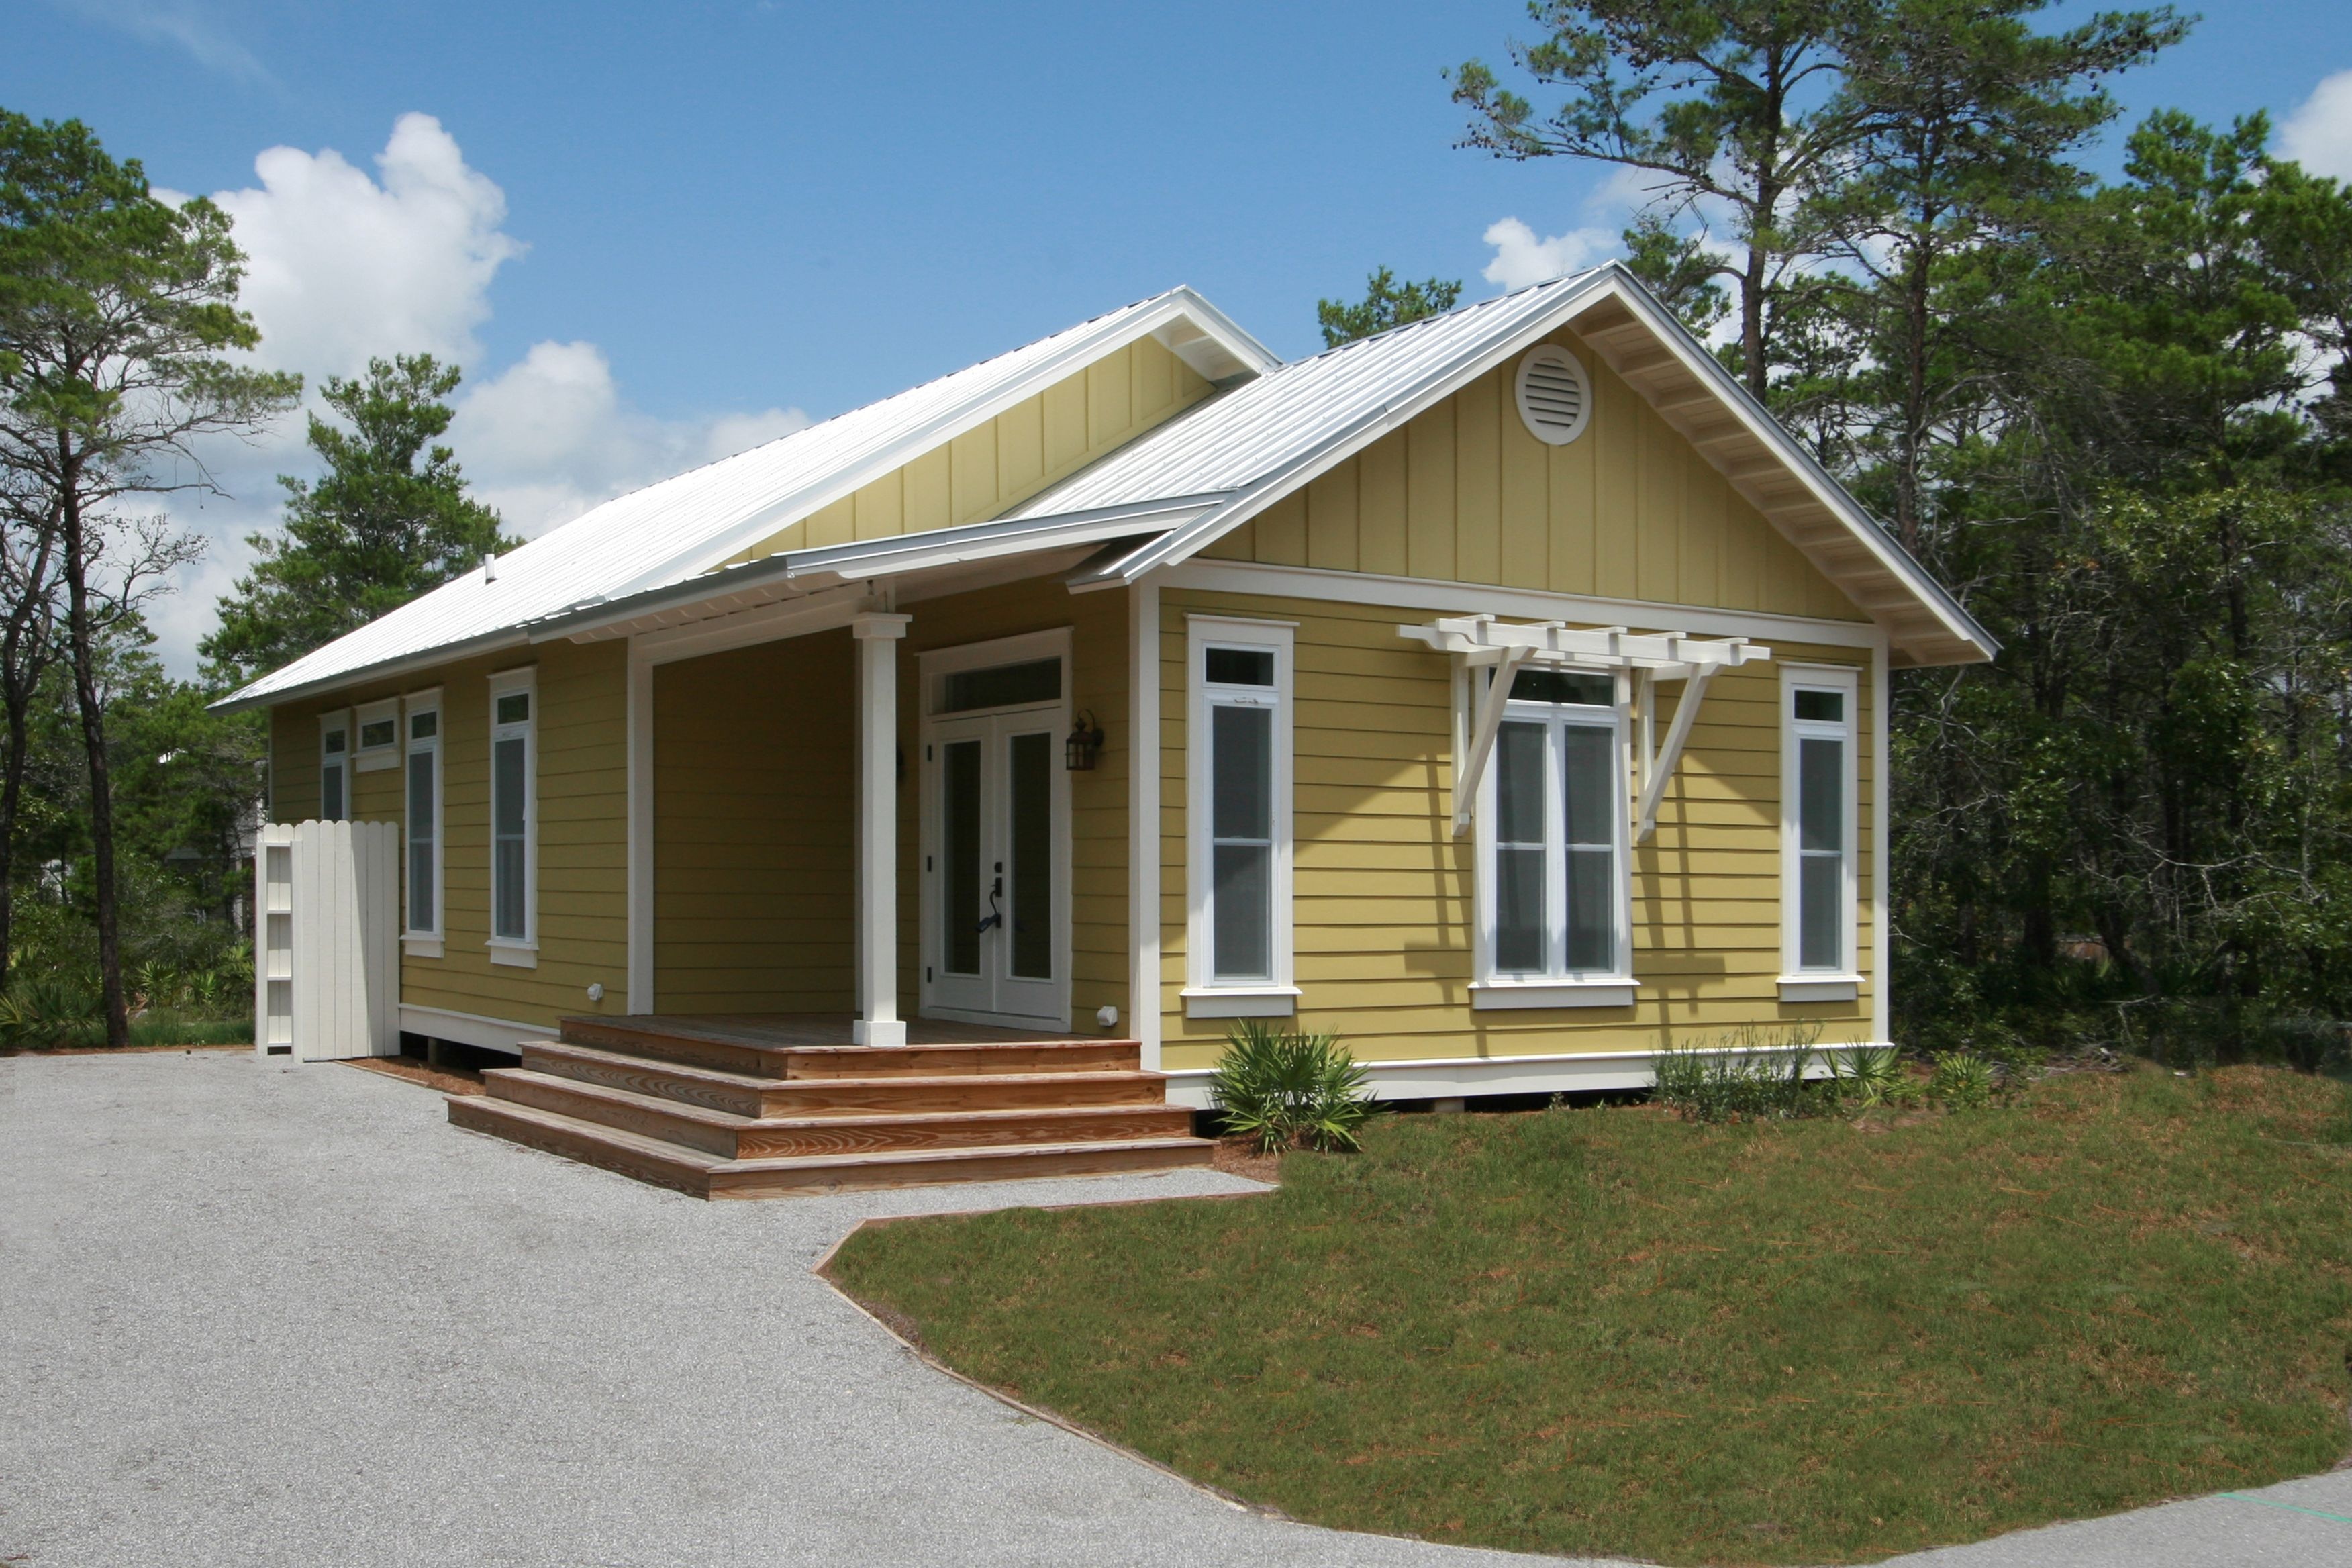 Custom ranch coastal modular home design by nationwide for Custom ranch homes